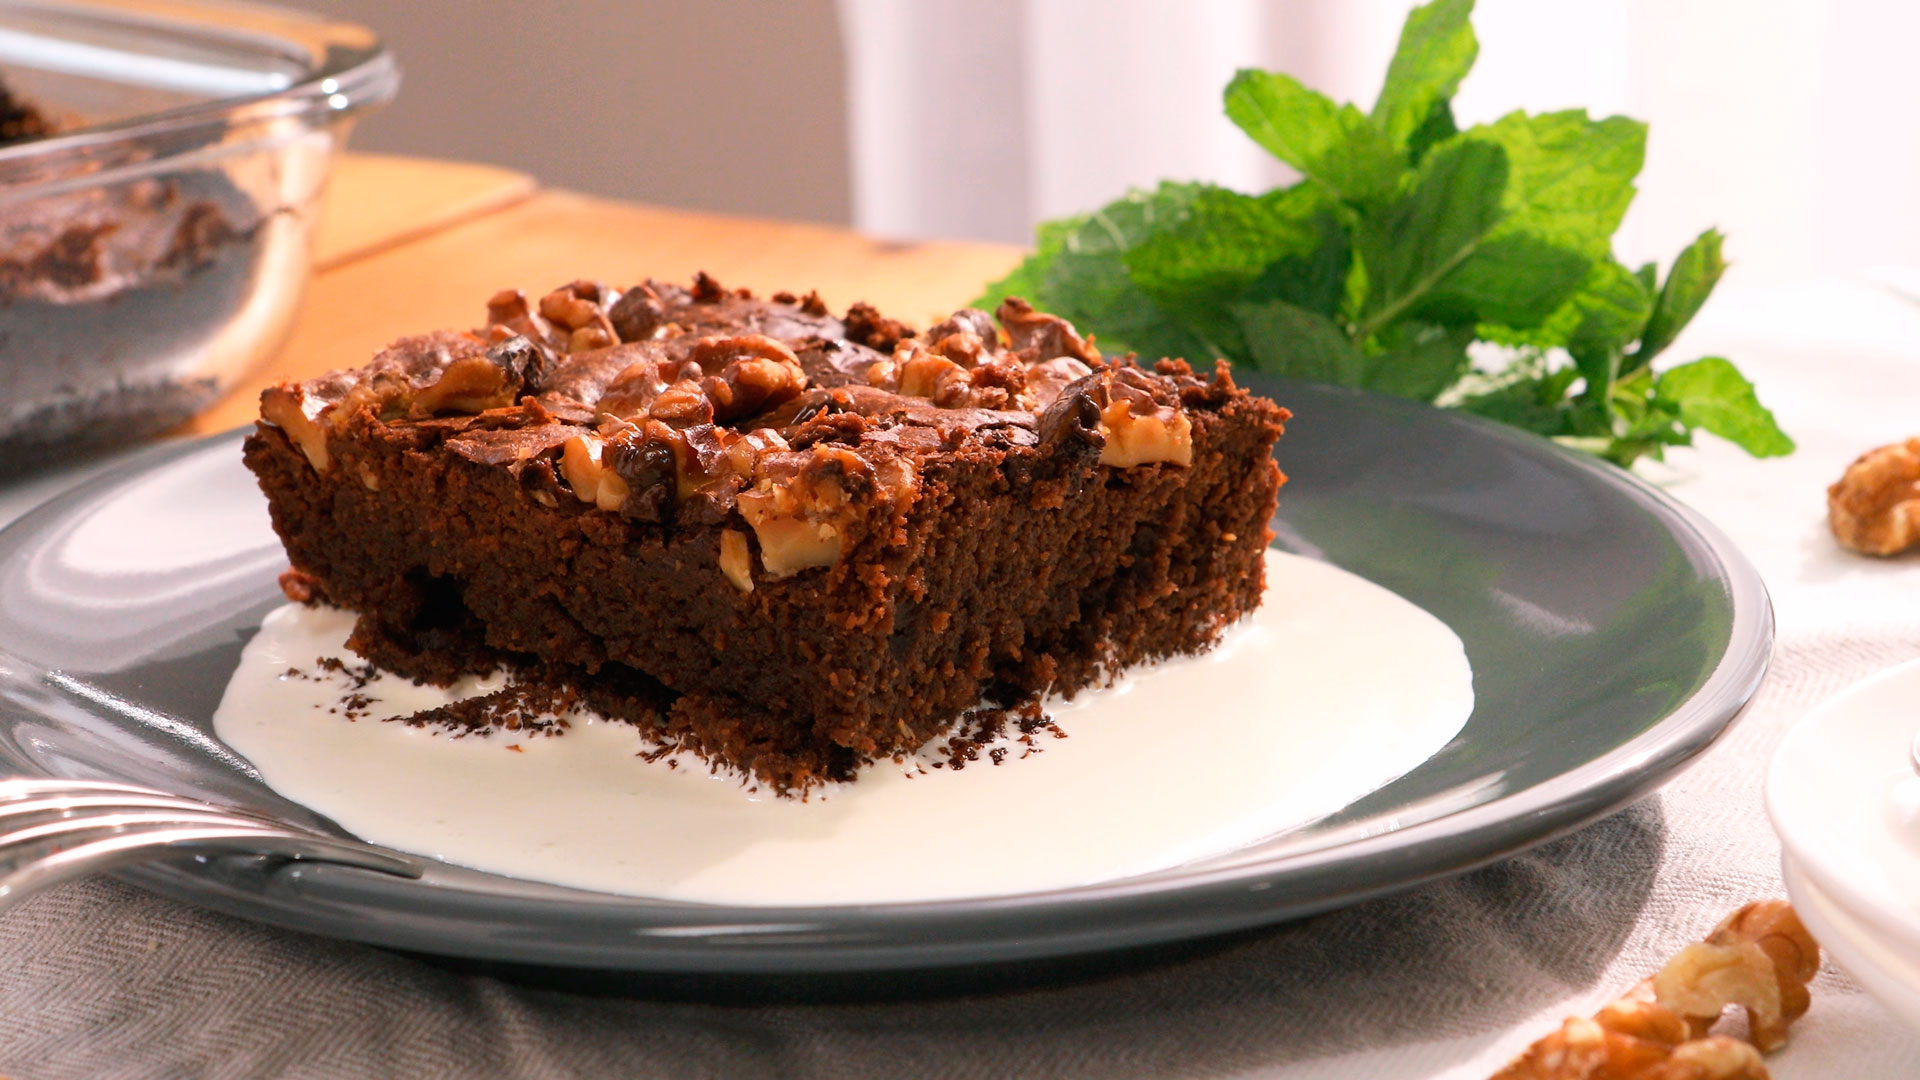 Brownie de chocolate y nueces